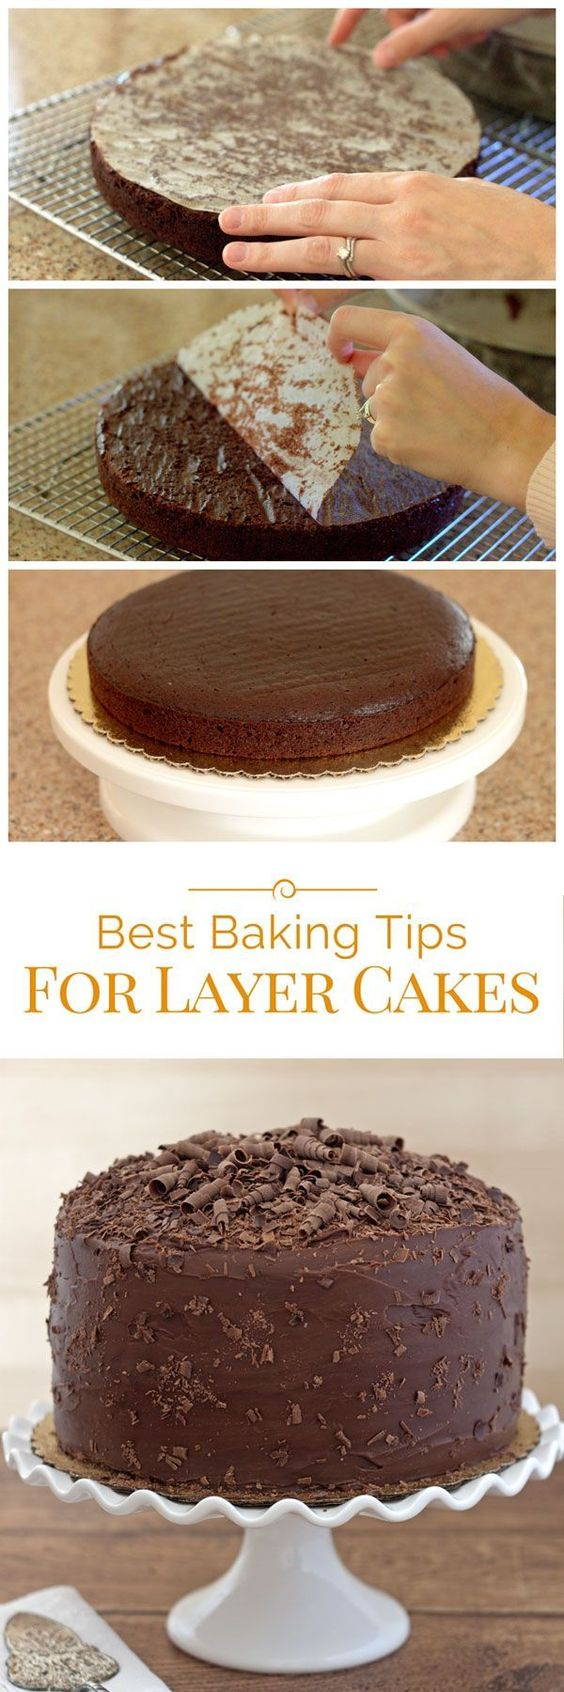 I'm sharing my favorite baking tips for layer cakes. I think you'll find a tip or two that can make baking layer cakes easier.